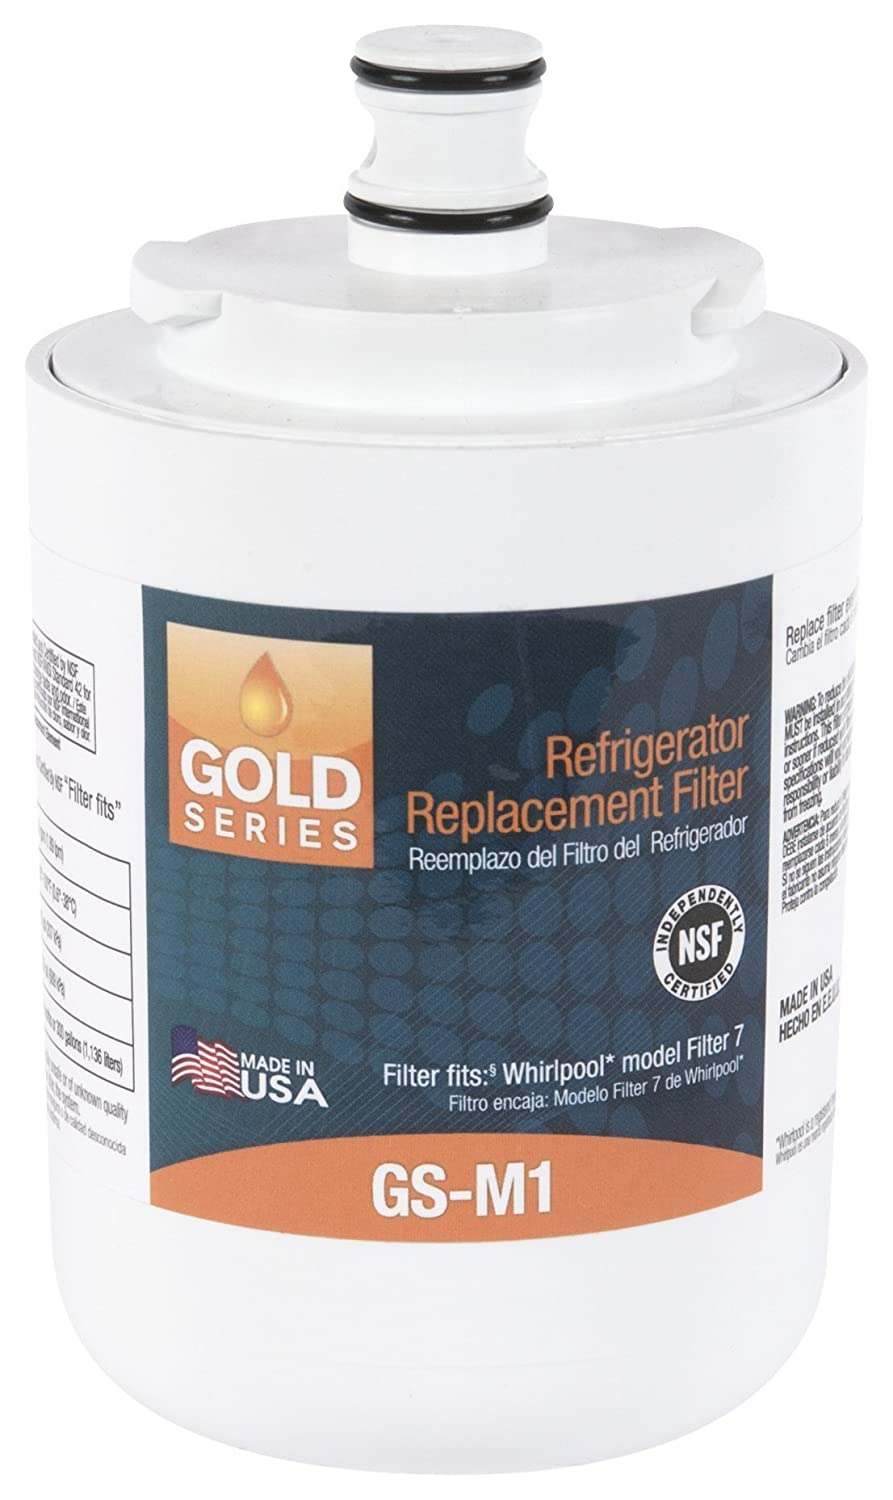 Gold Series GS-M1 Refrigerator Water Replacement Filter, Fits Maytag UKF7003, Whirlpool EDR7D1 FILTER 7